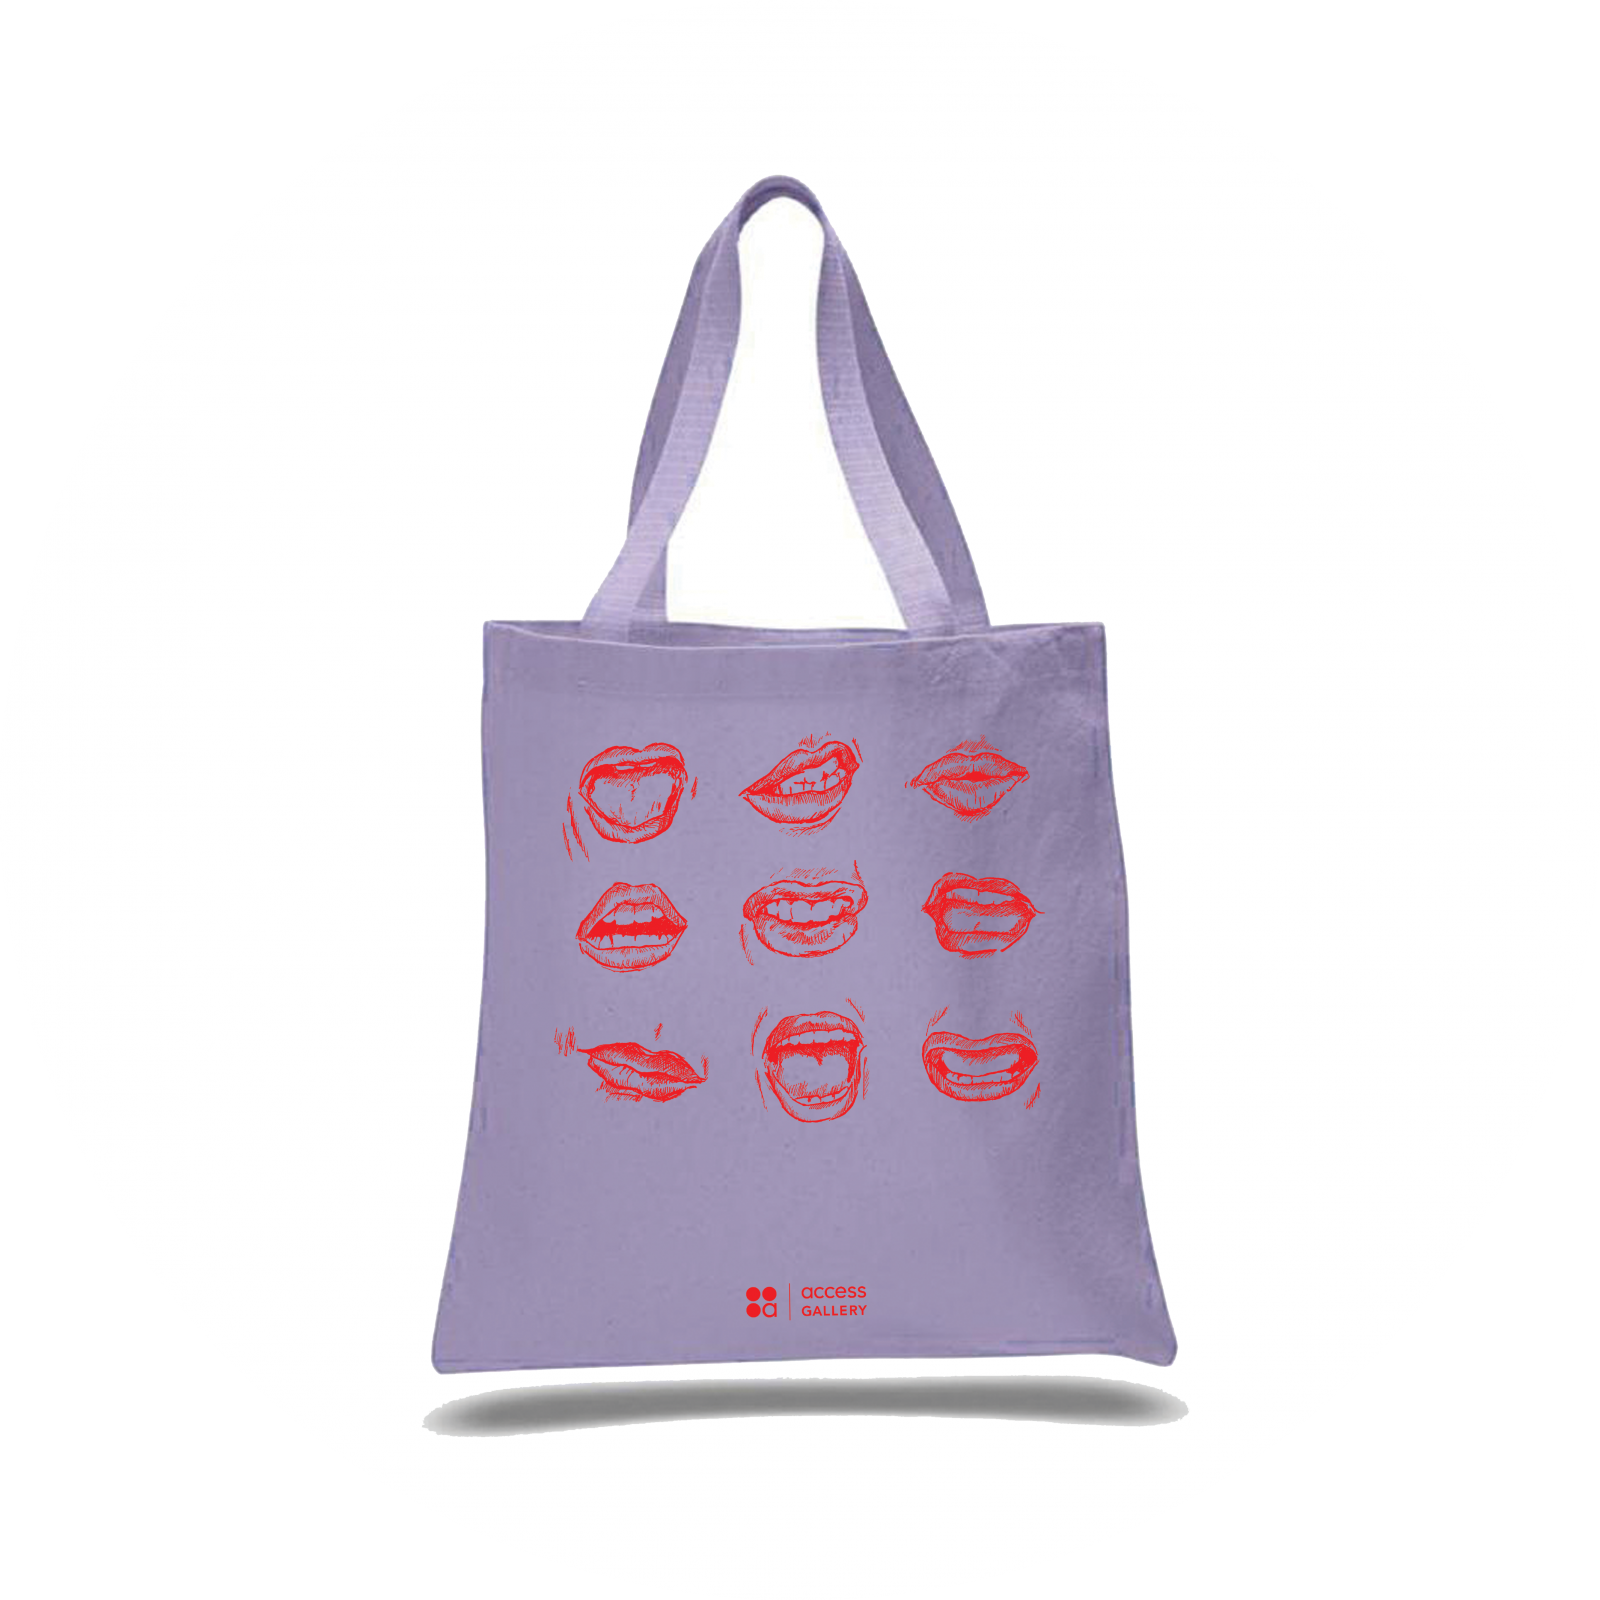 lavender tote bag with screen print of nine mouths in red